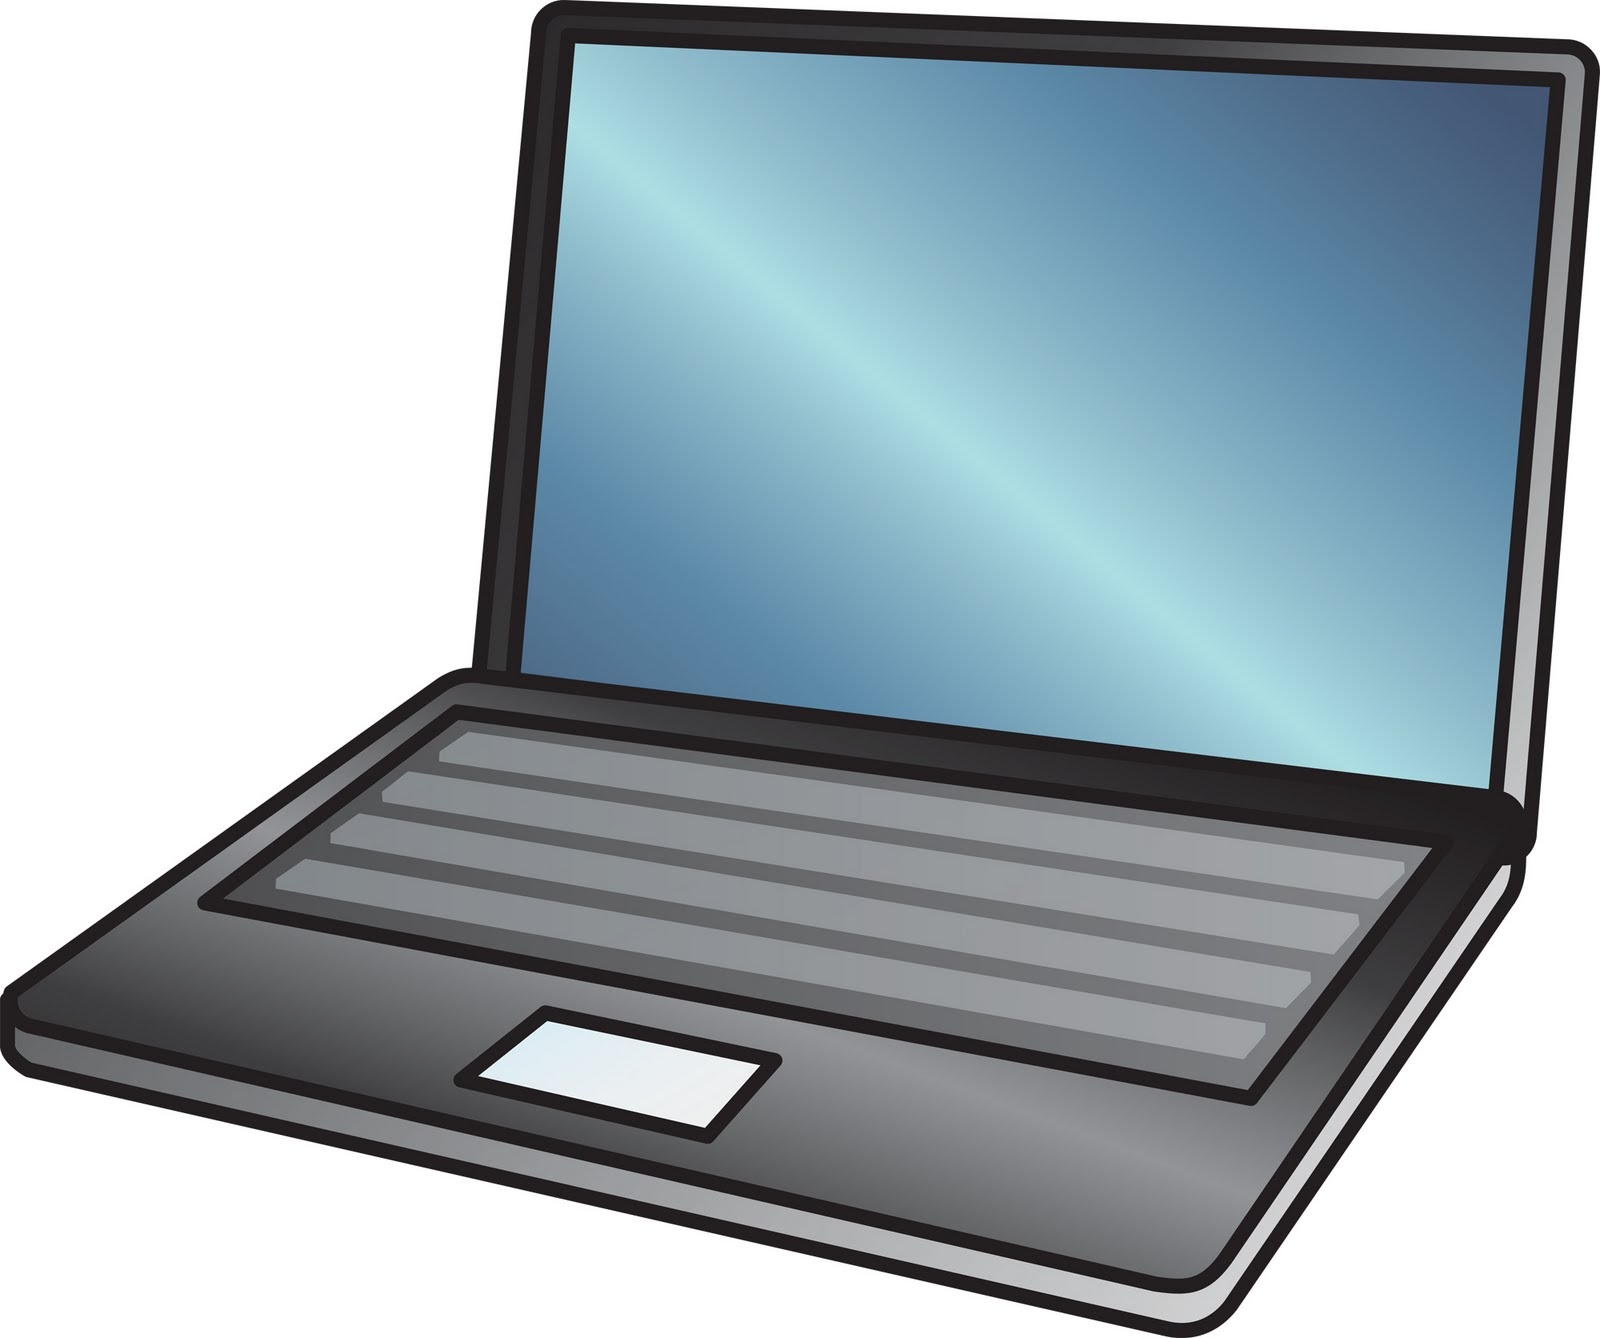 Computer clipart #4, Download drawings